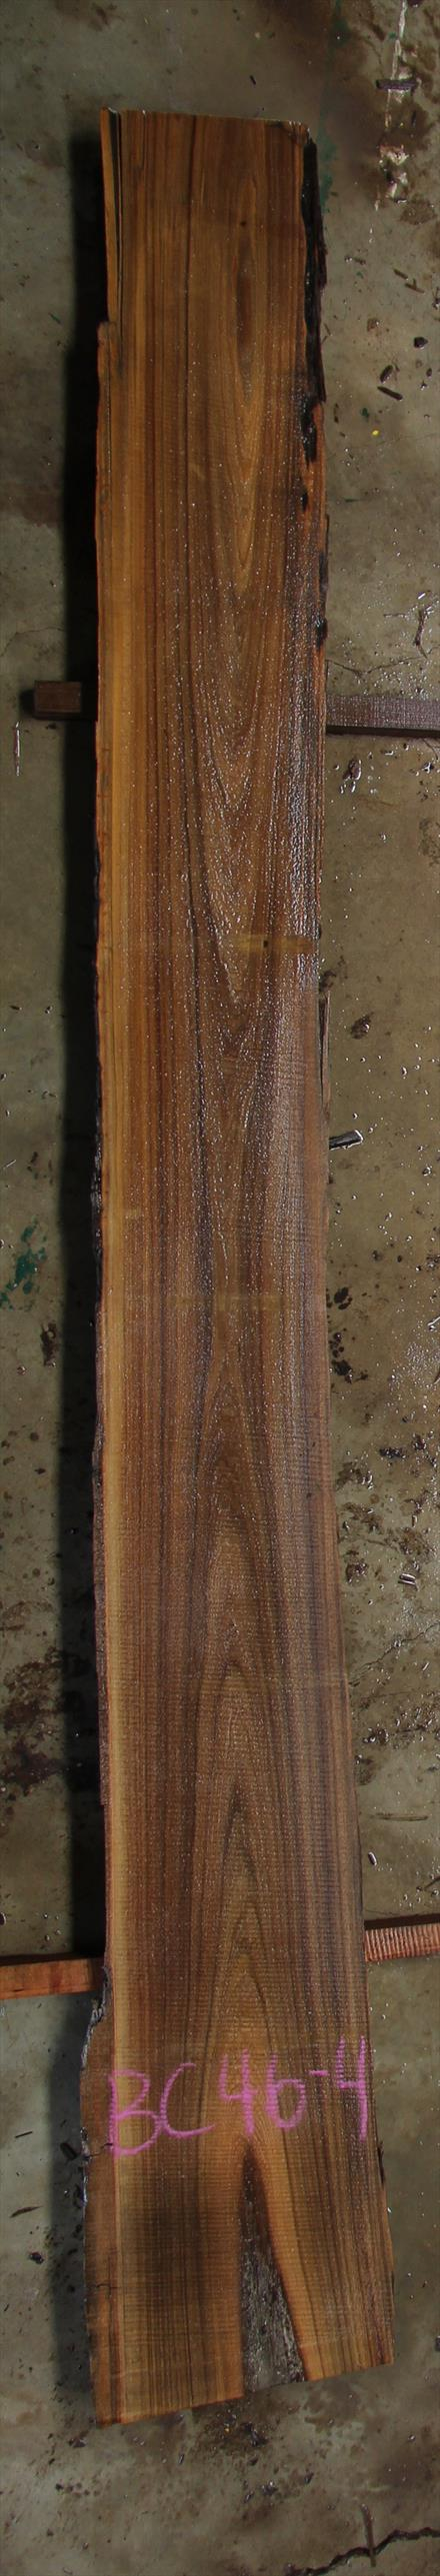 Buried Cypress Slab BC004b-04